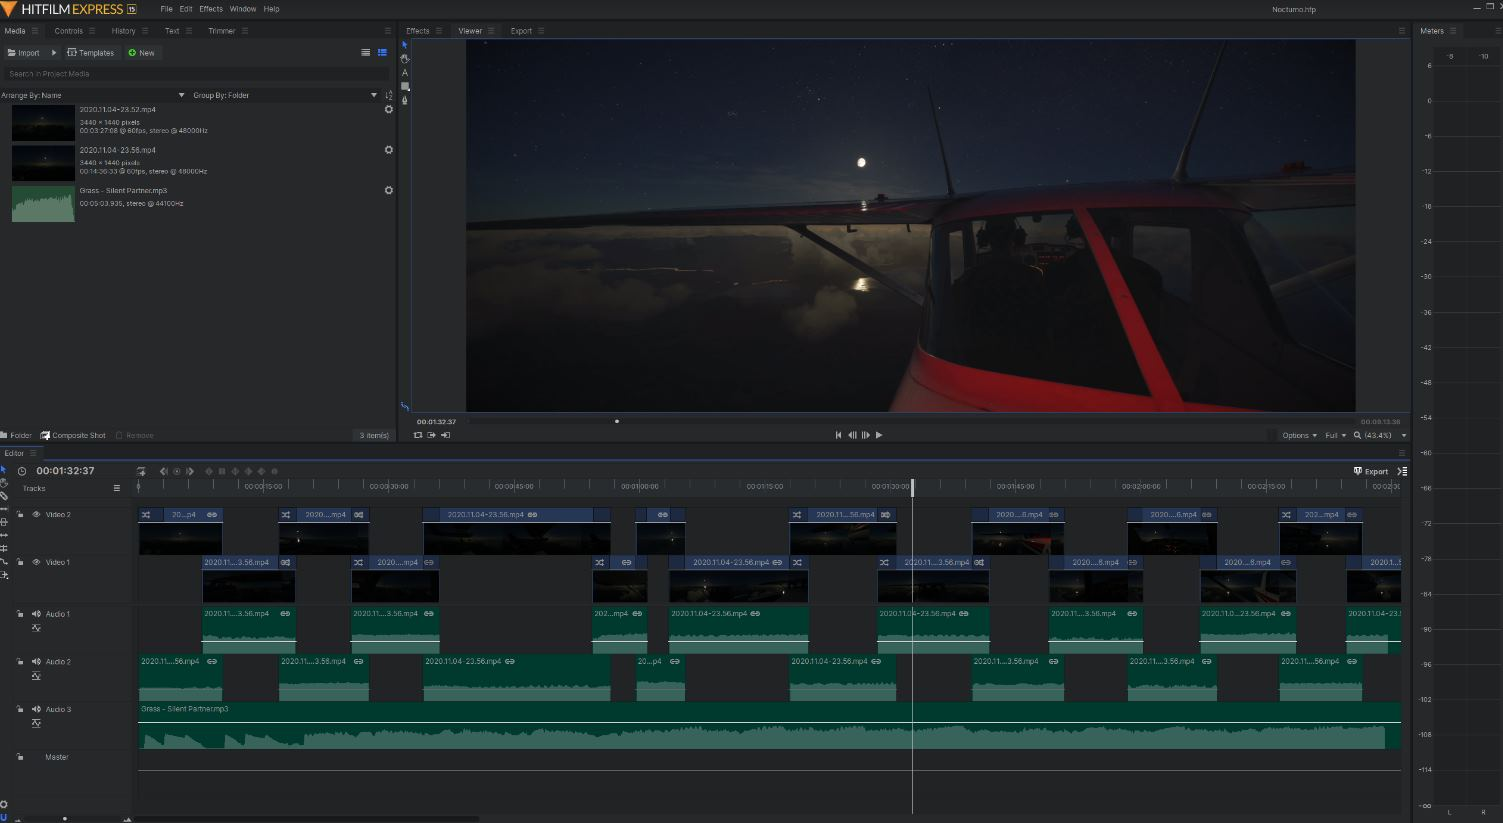 HitFilm Express, impresionante editor gratis de video, para principiantes, para Windows y Mac